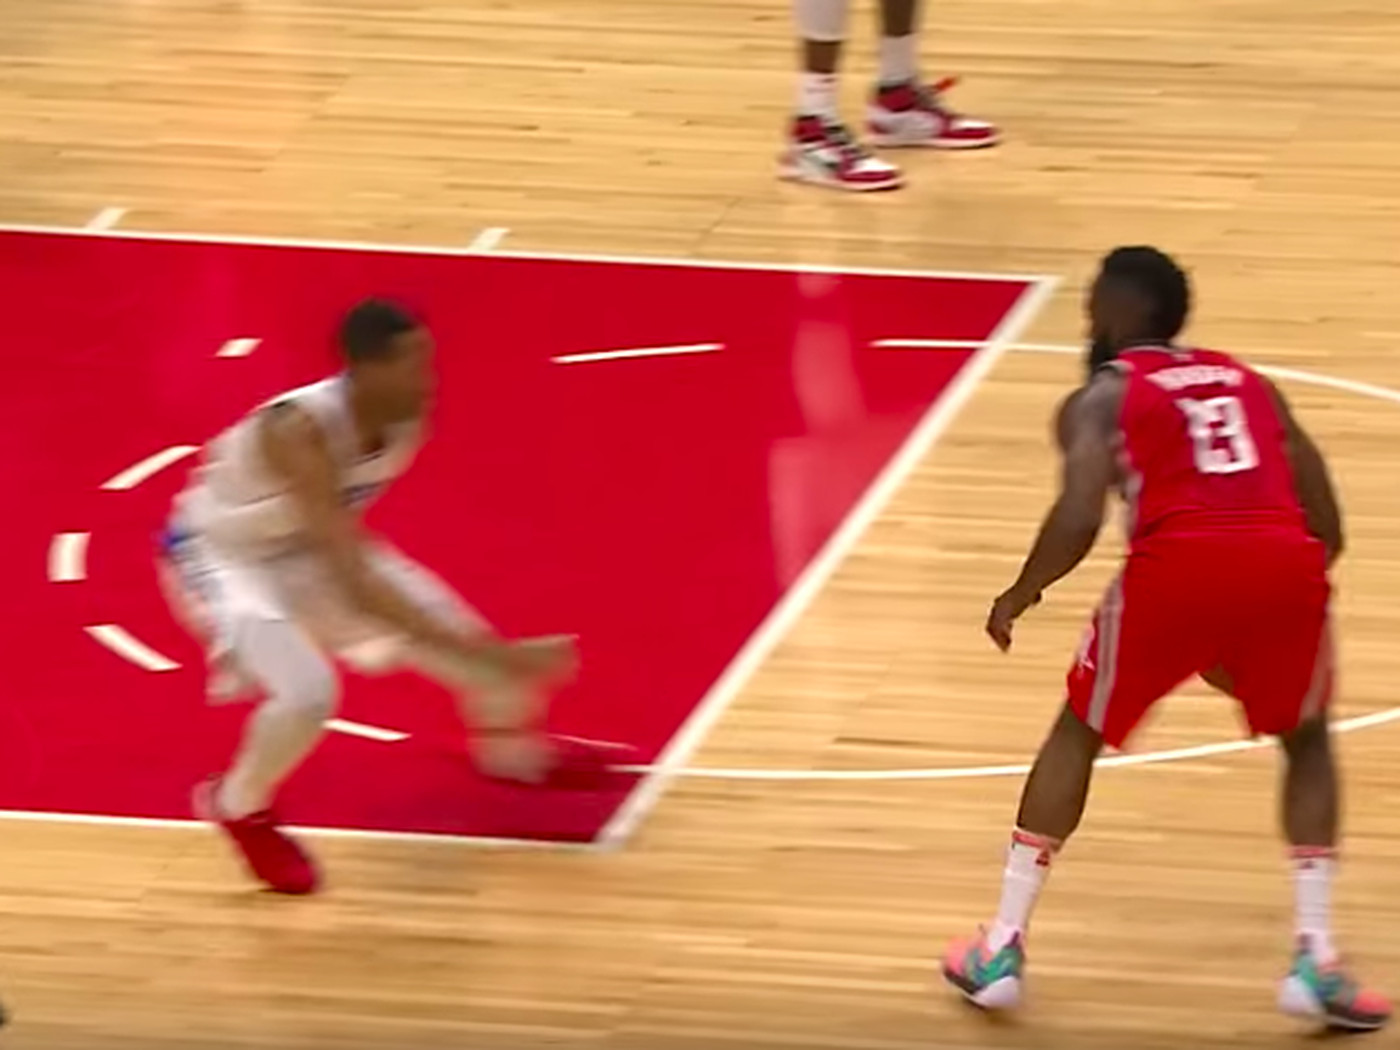 c99cfc17379b 13 most disrespectful things from James Harden s crossover on Wesley Johnson  - SBNation.com